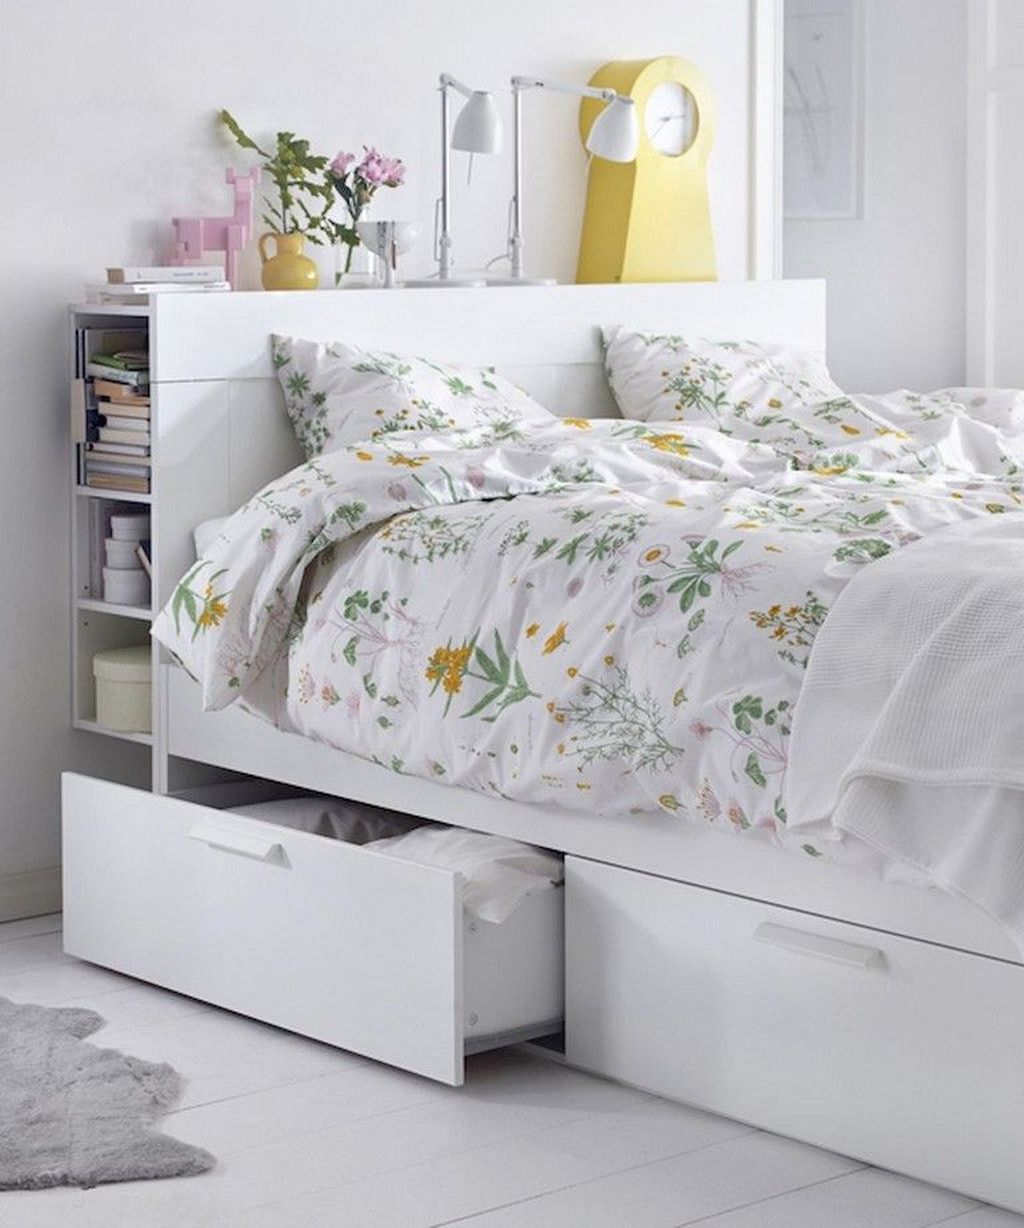 20+ Newest Bedroom Storage Design Ideas For Small Space